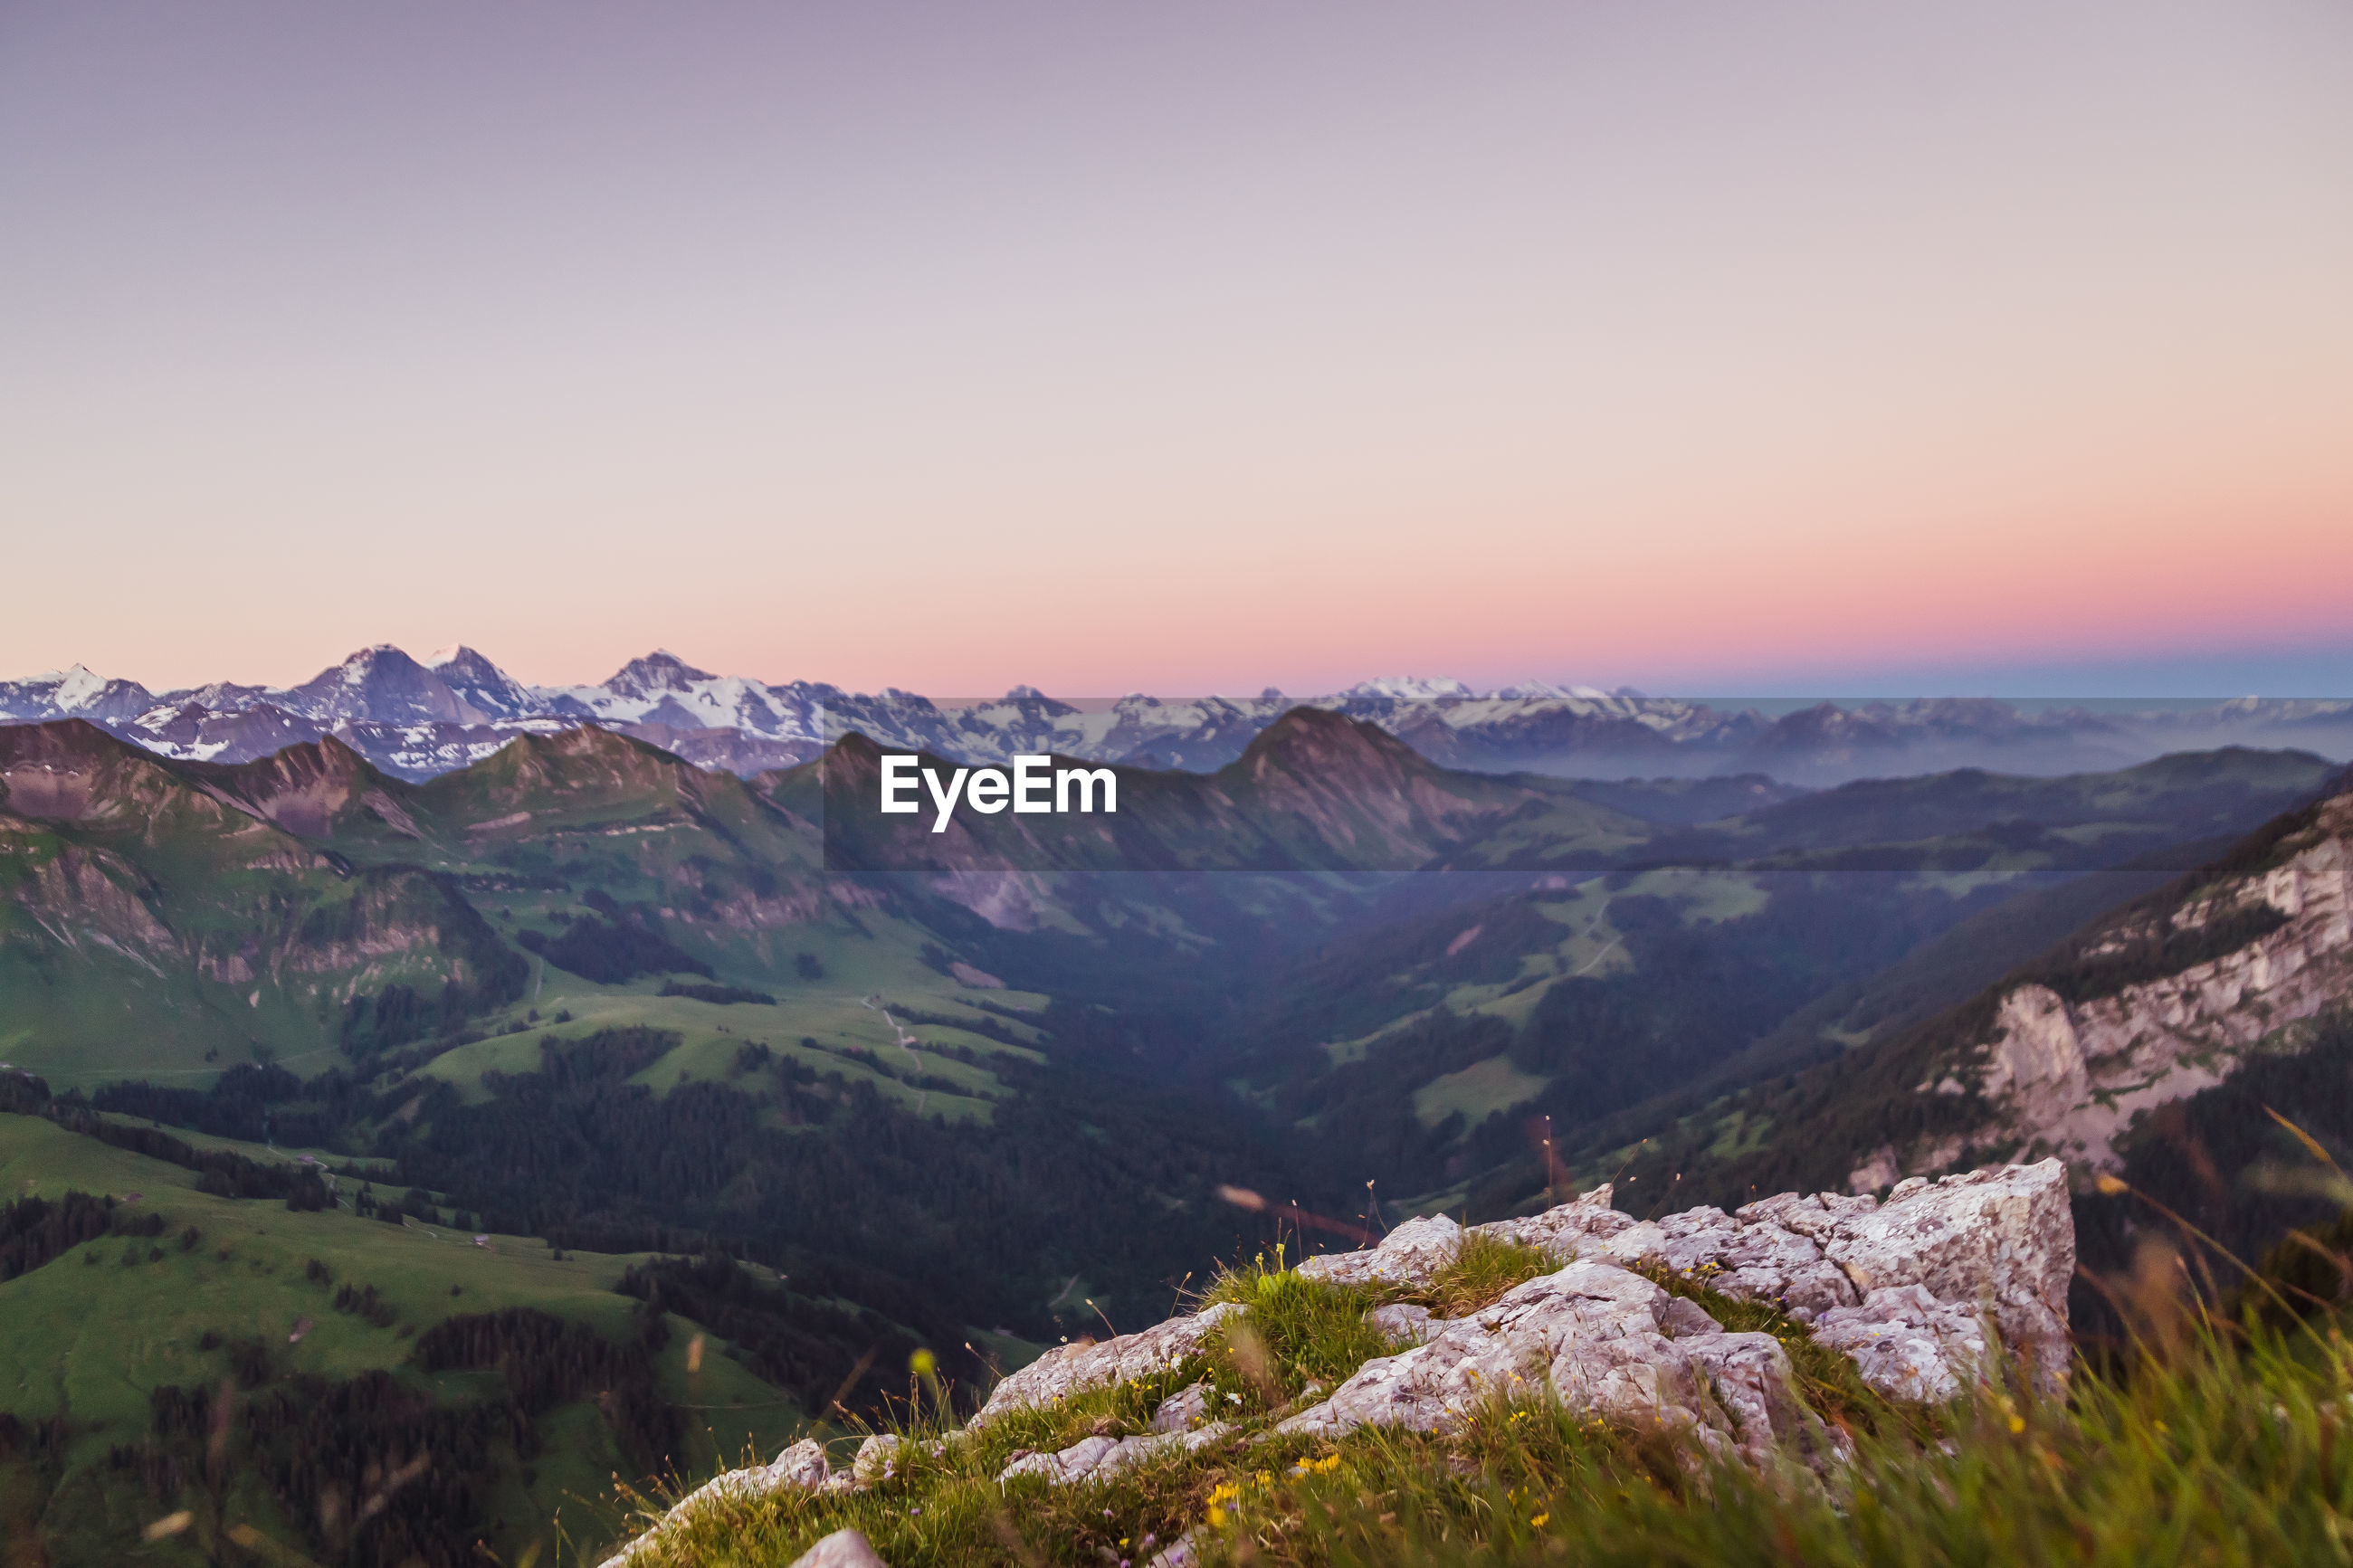 mountain, nature, tranquil scene, beauty in nature, scenics, tranquility, landscape, no people, outdoors, sunset, mountain range, sky, clear sky, day